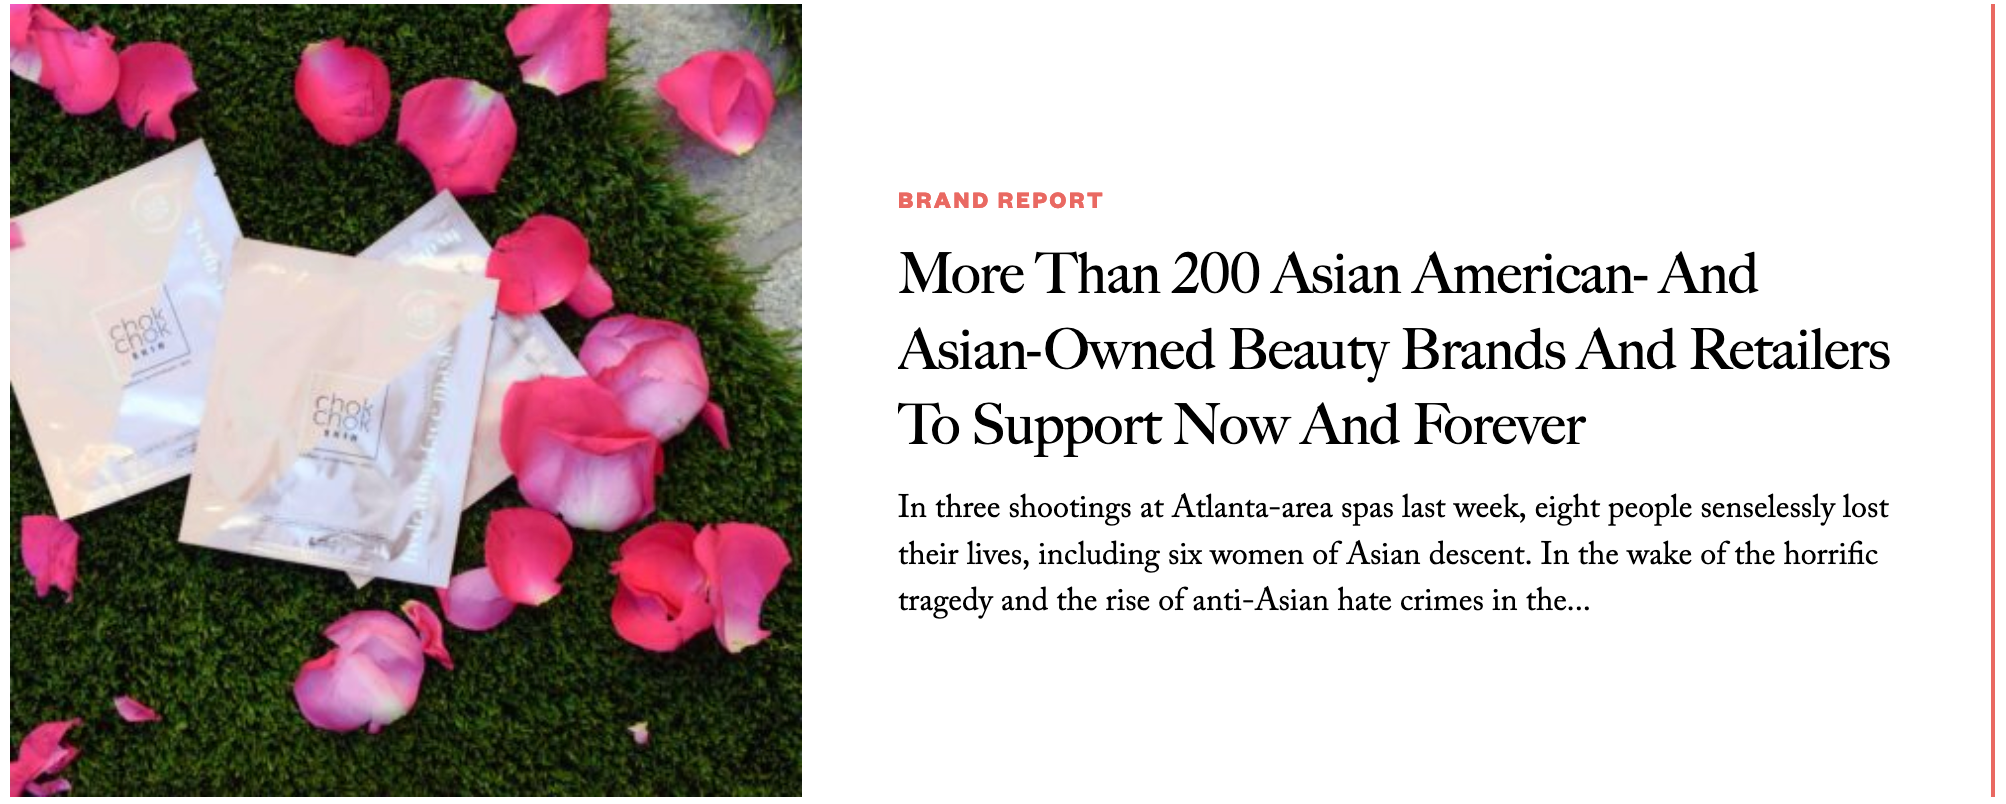 BEAUTY INDEPENDENT - More Than 200 Asian American- And Asian-Owned Beauty Brands And Retailers To Support Now And Forever